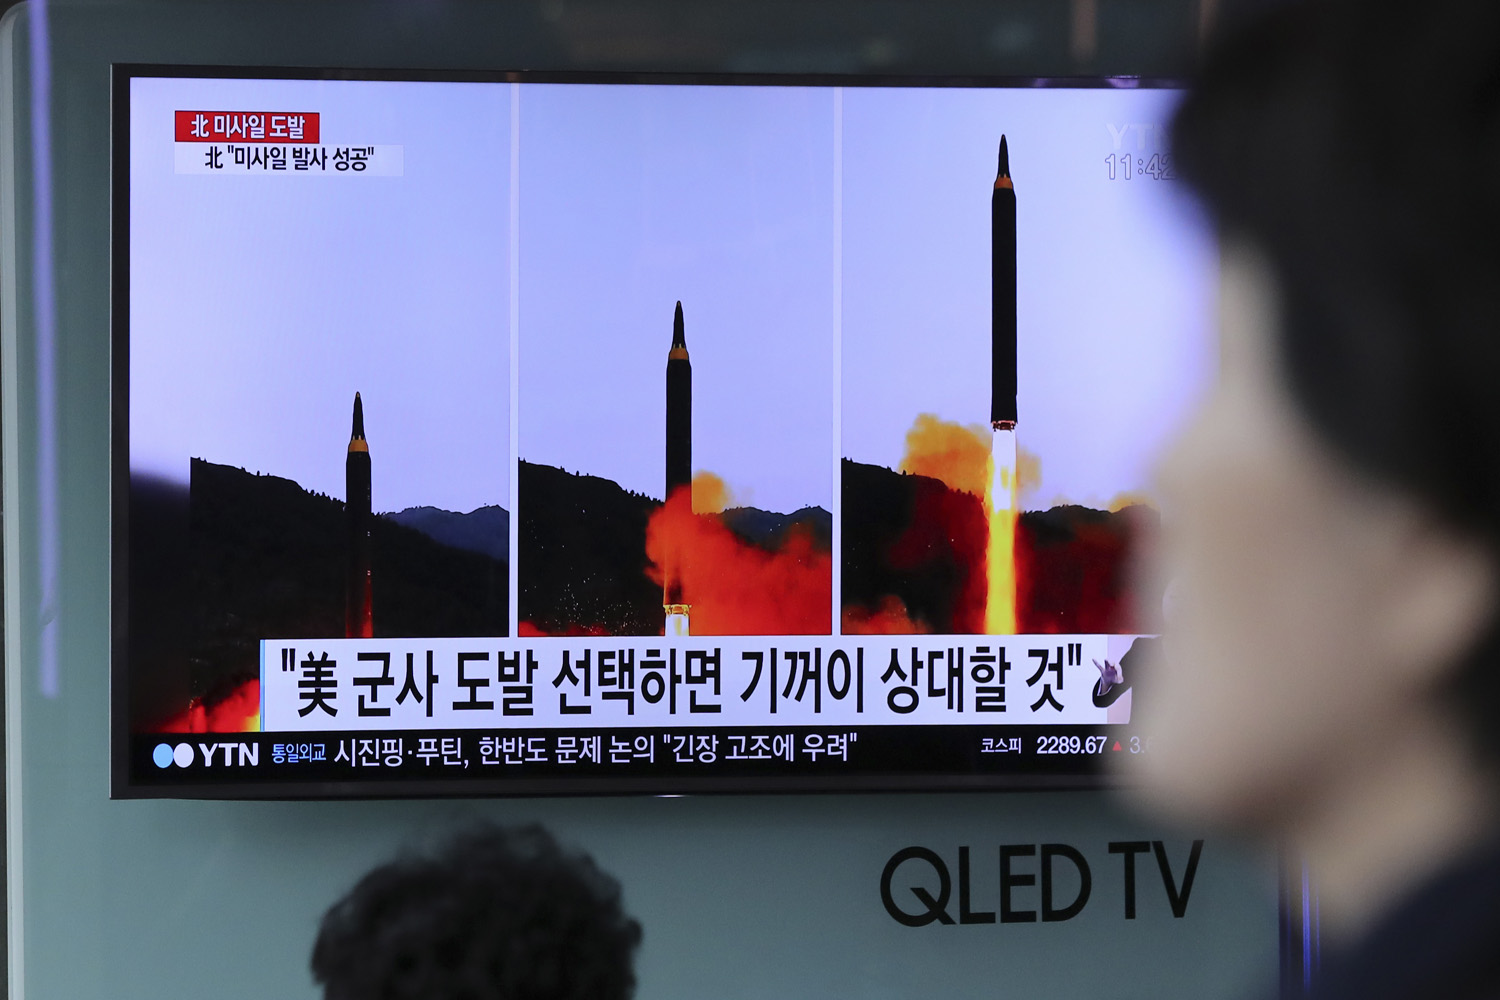 A woman walks by a TV news program showing images of North Korean missile launch, published in the country's Rodong Sinmun newspaper, at Seoul Railway station in Seoul, South Korea, Monday, May 15, 2017. (Lee Jin-man/AP)